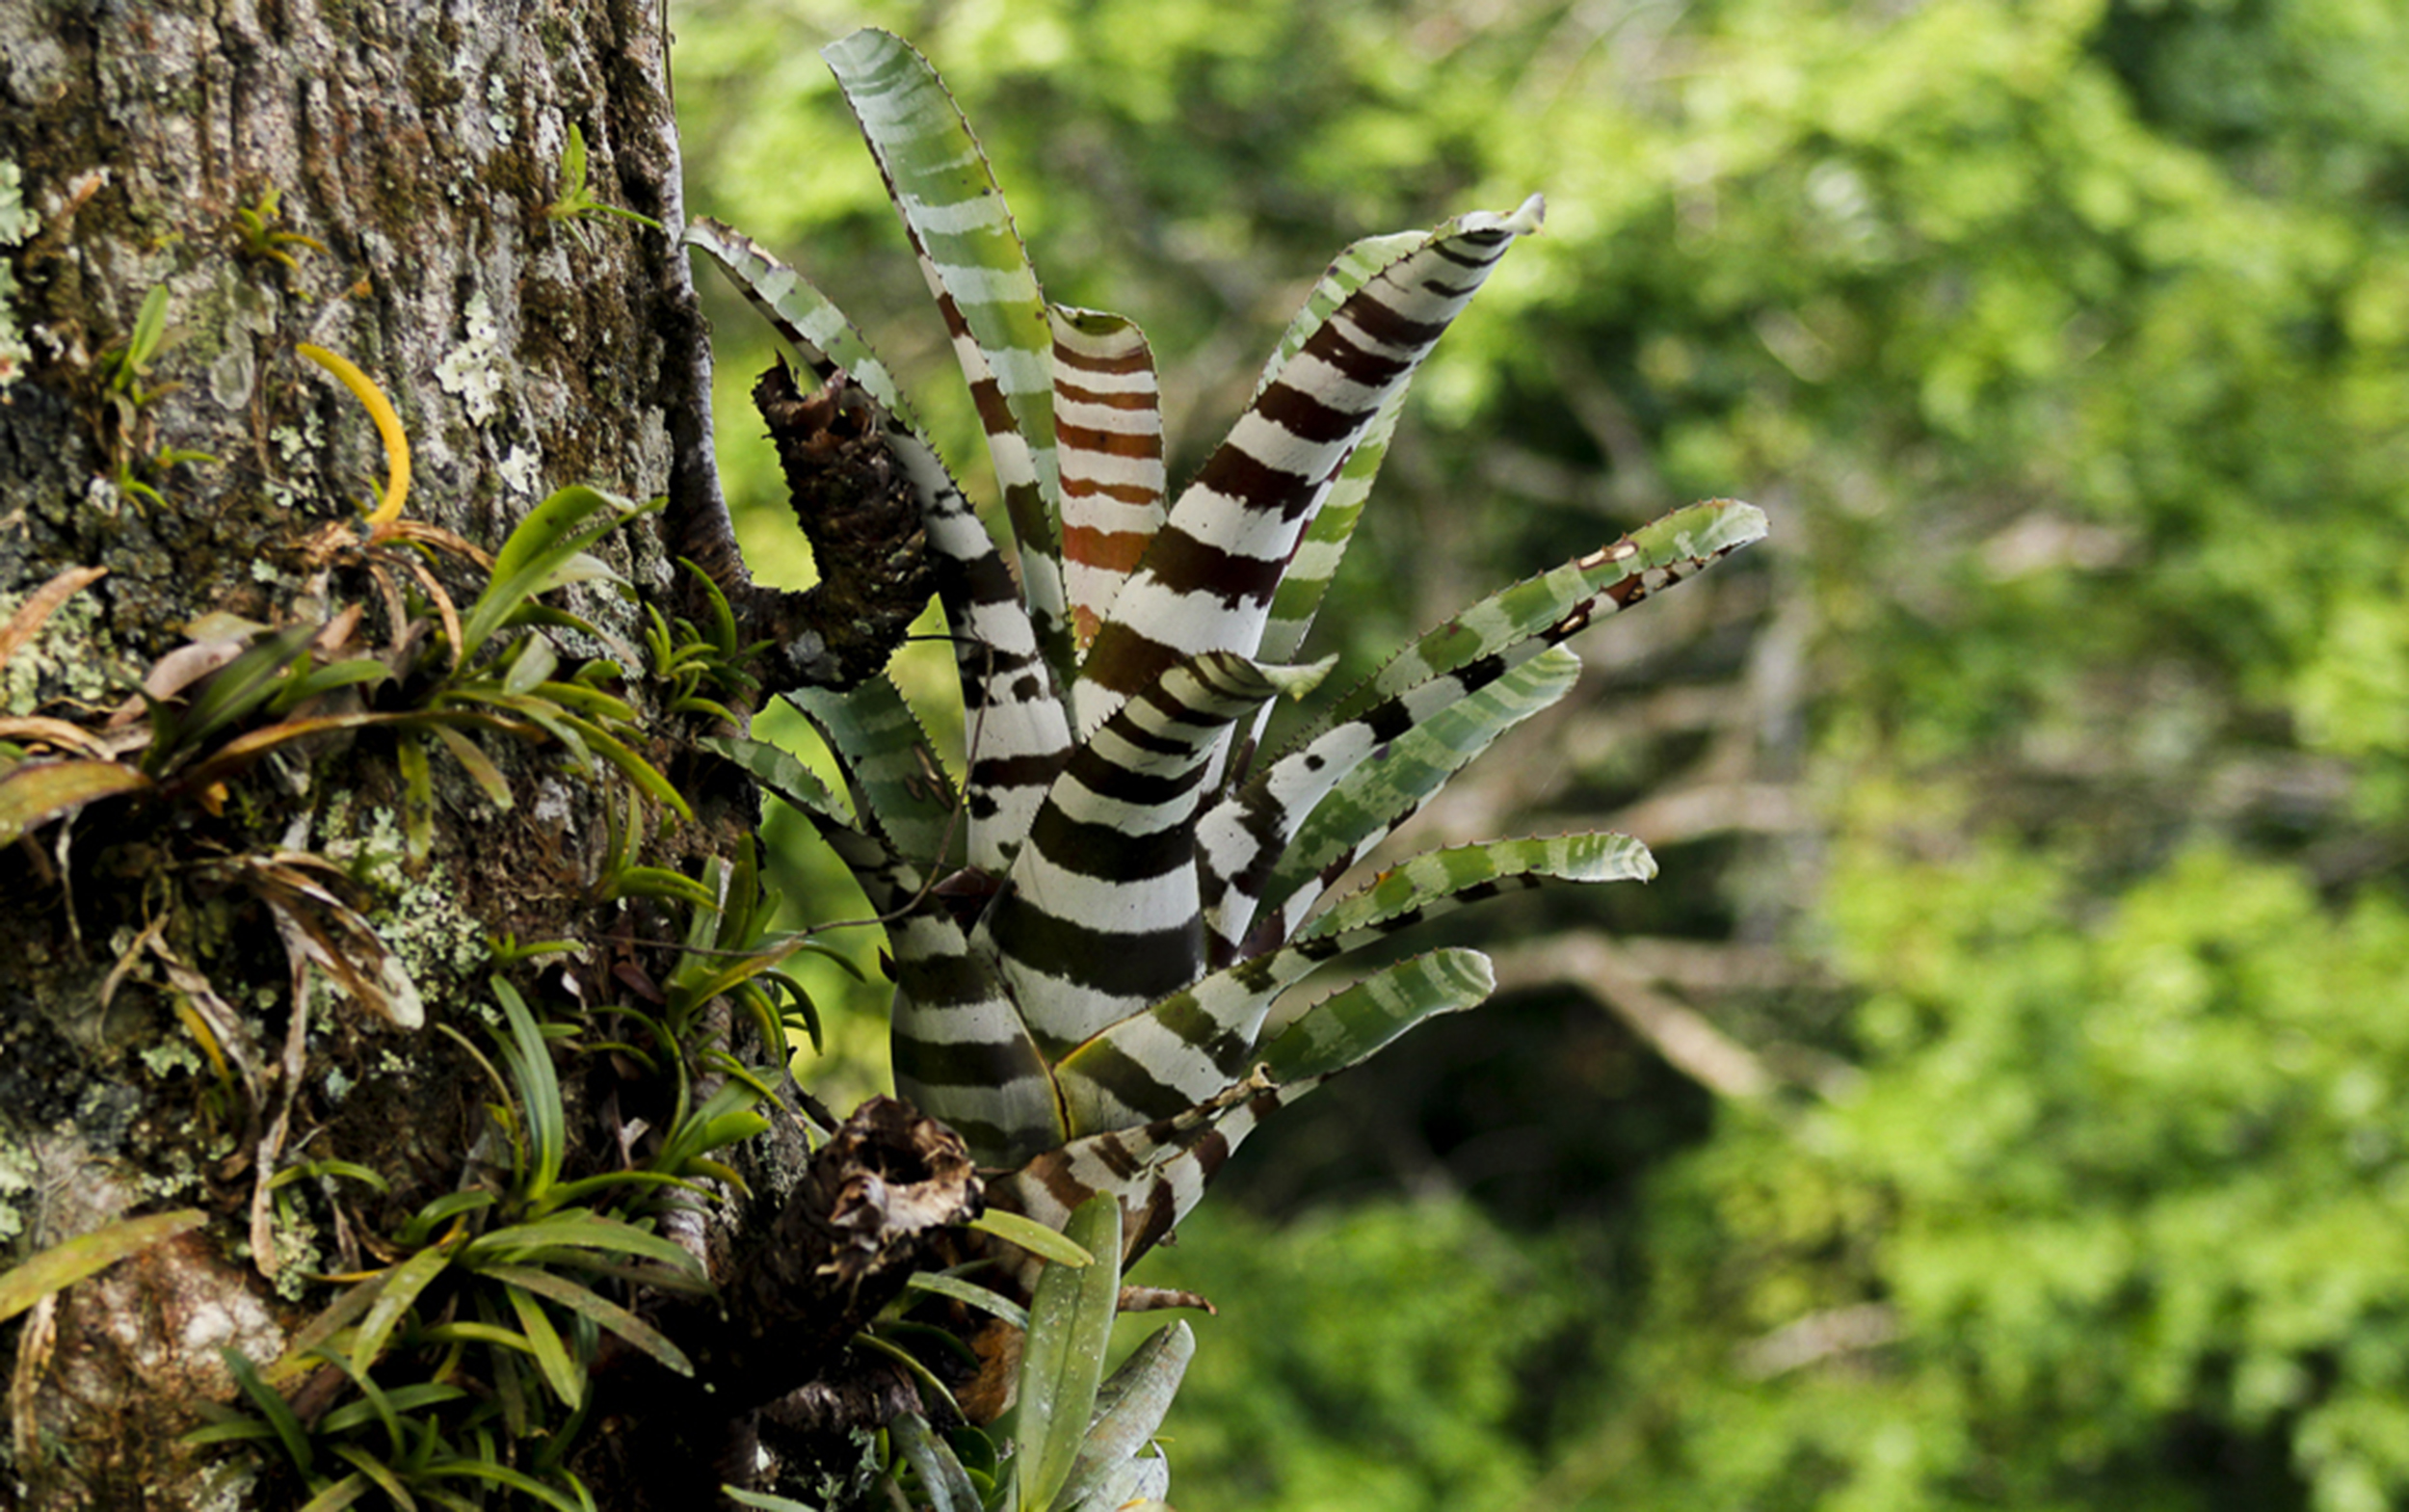 The zebra bromeliad lives on the upper branches of the trees, where it can get sun